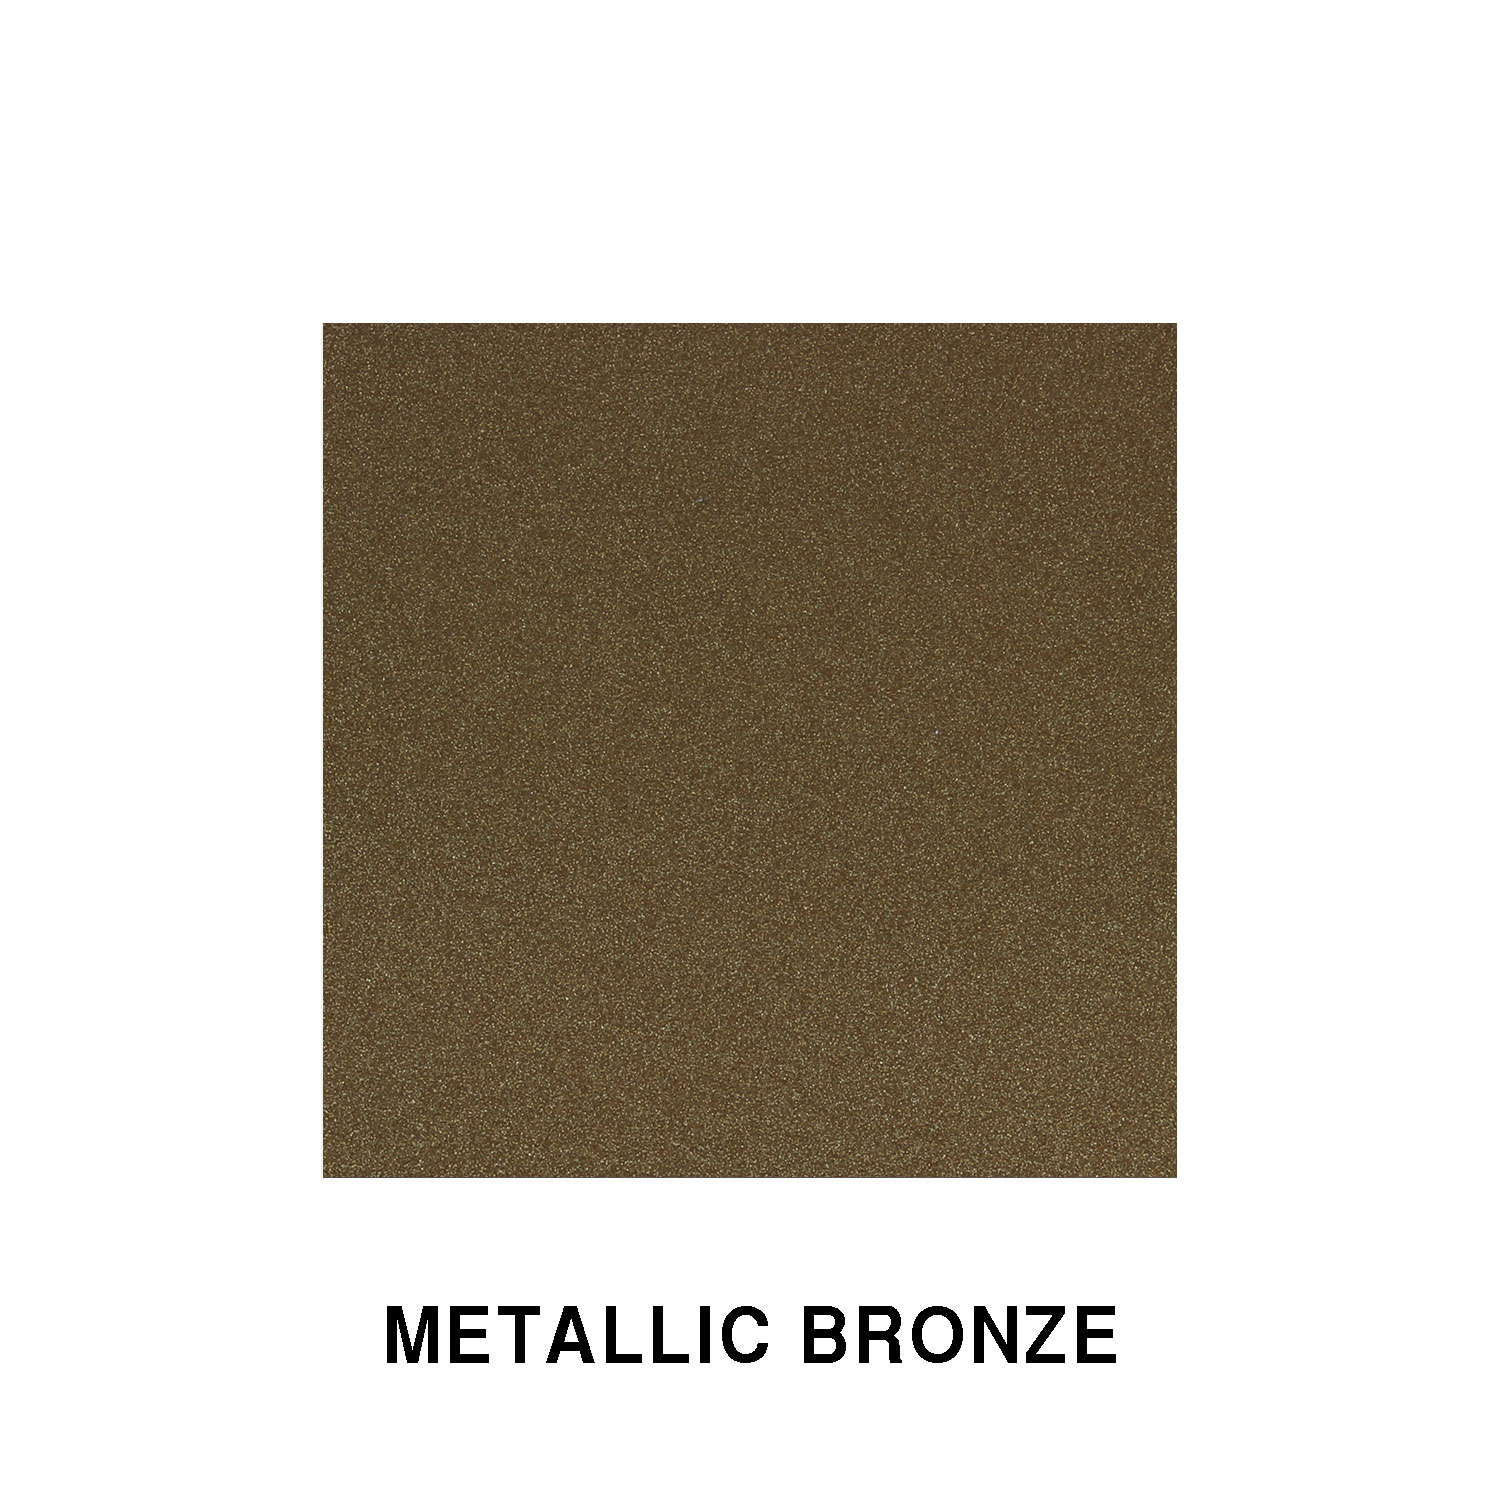 Metallic Bronze Fiberglass Finish